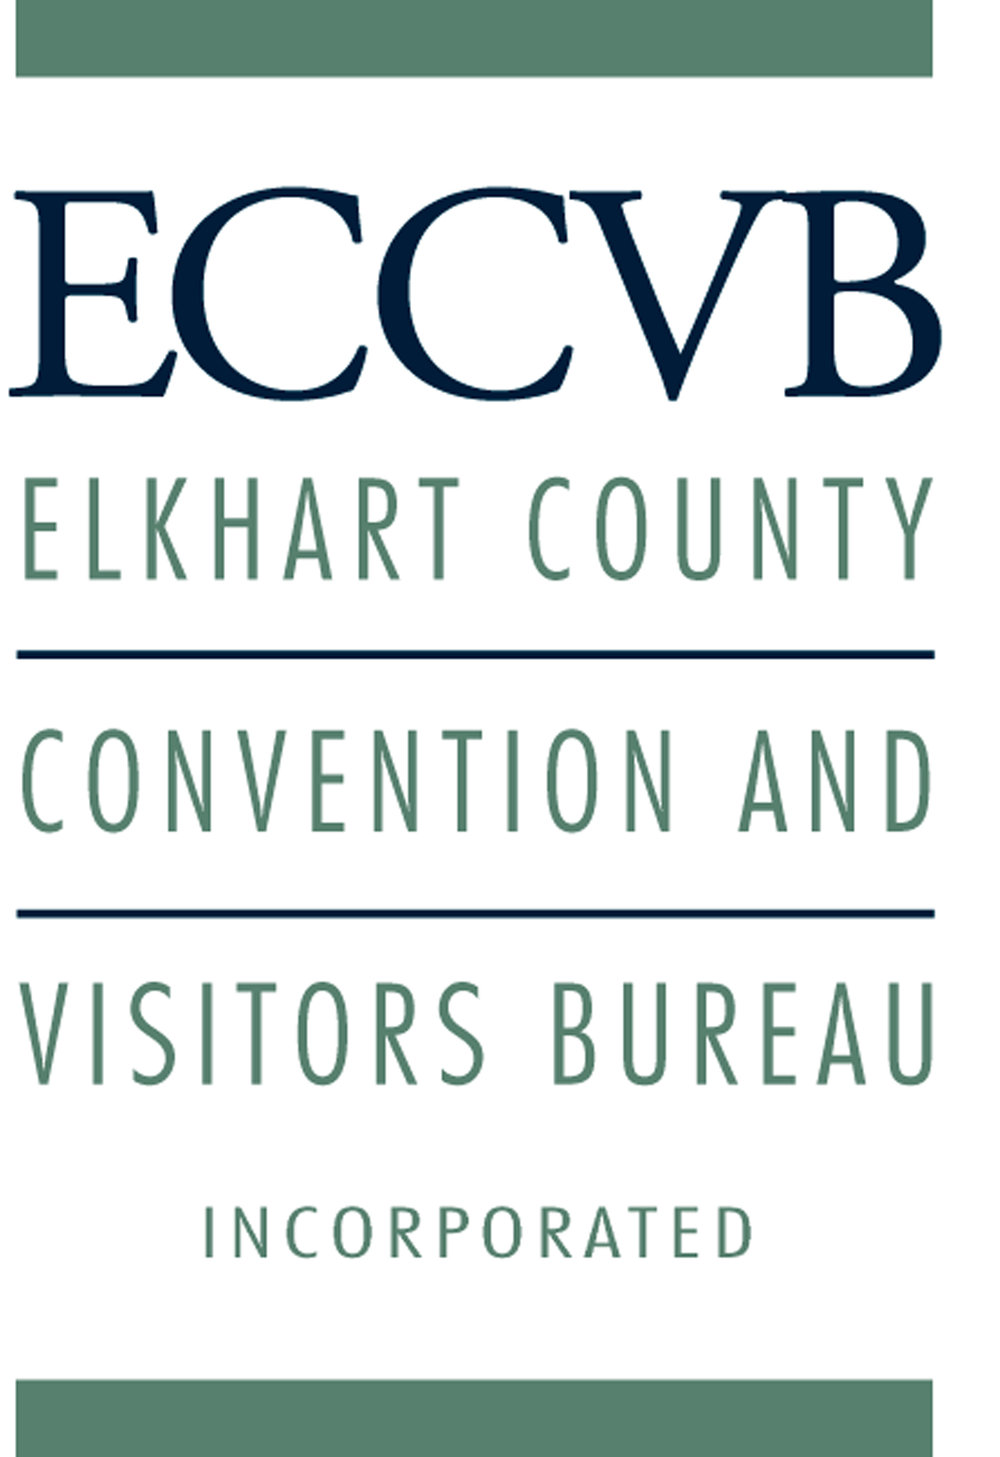 Elkhart County CVB logo high-res.jpg